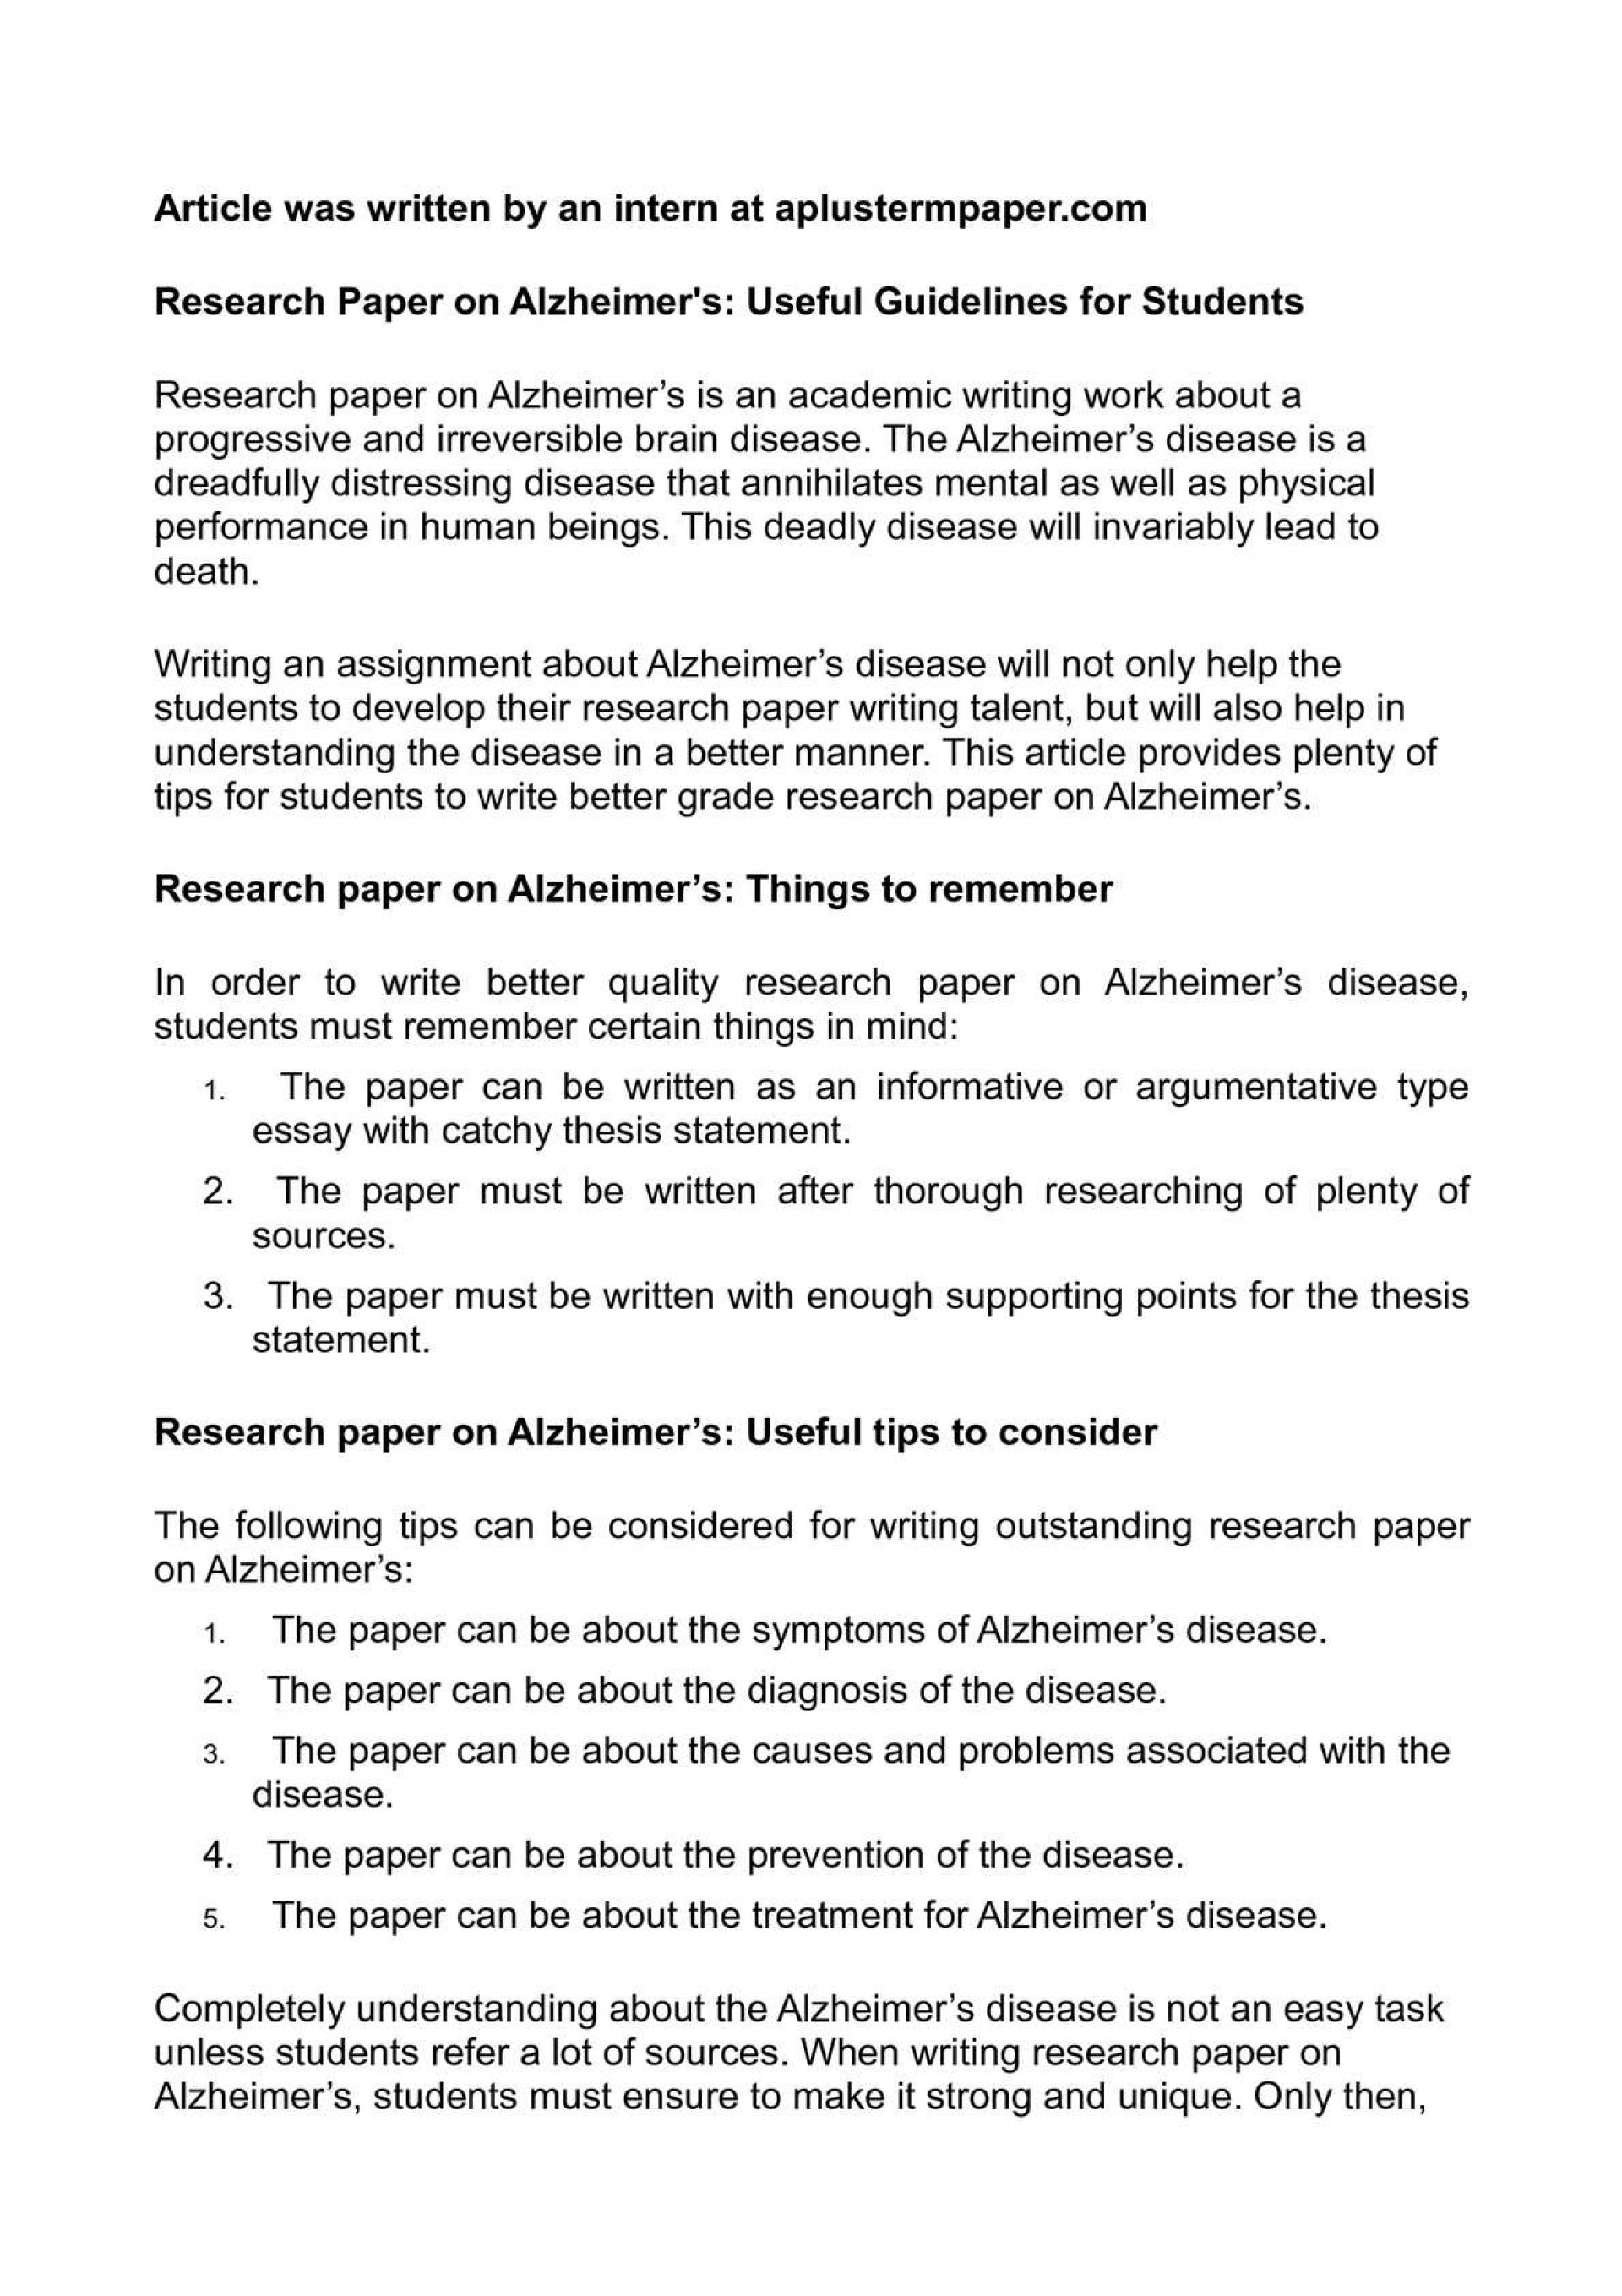 001 Research Paper Alzheimers Disease Outline Incredible Example For Alzheimer's Alzheimer 1920